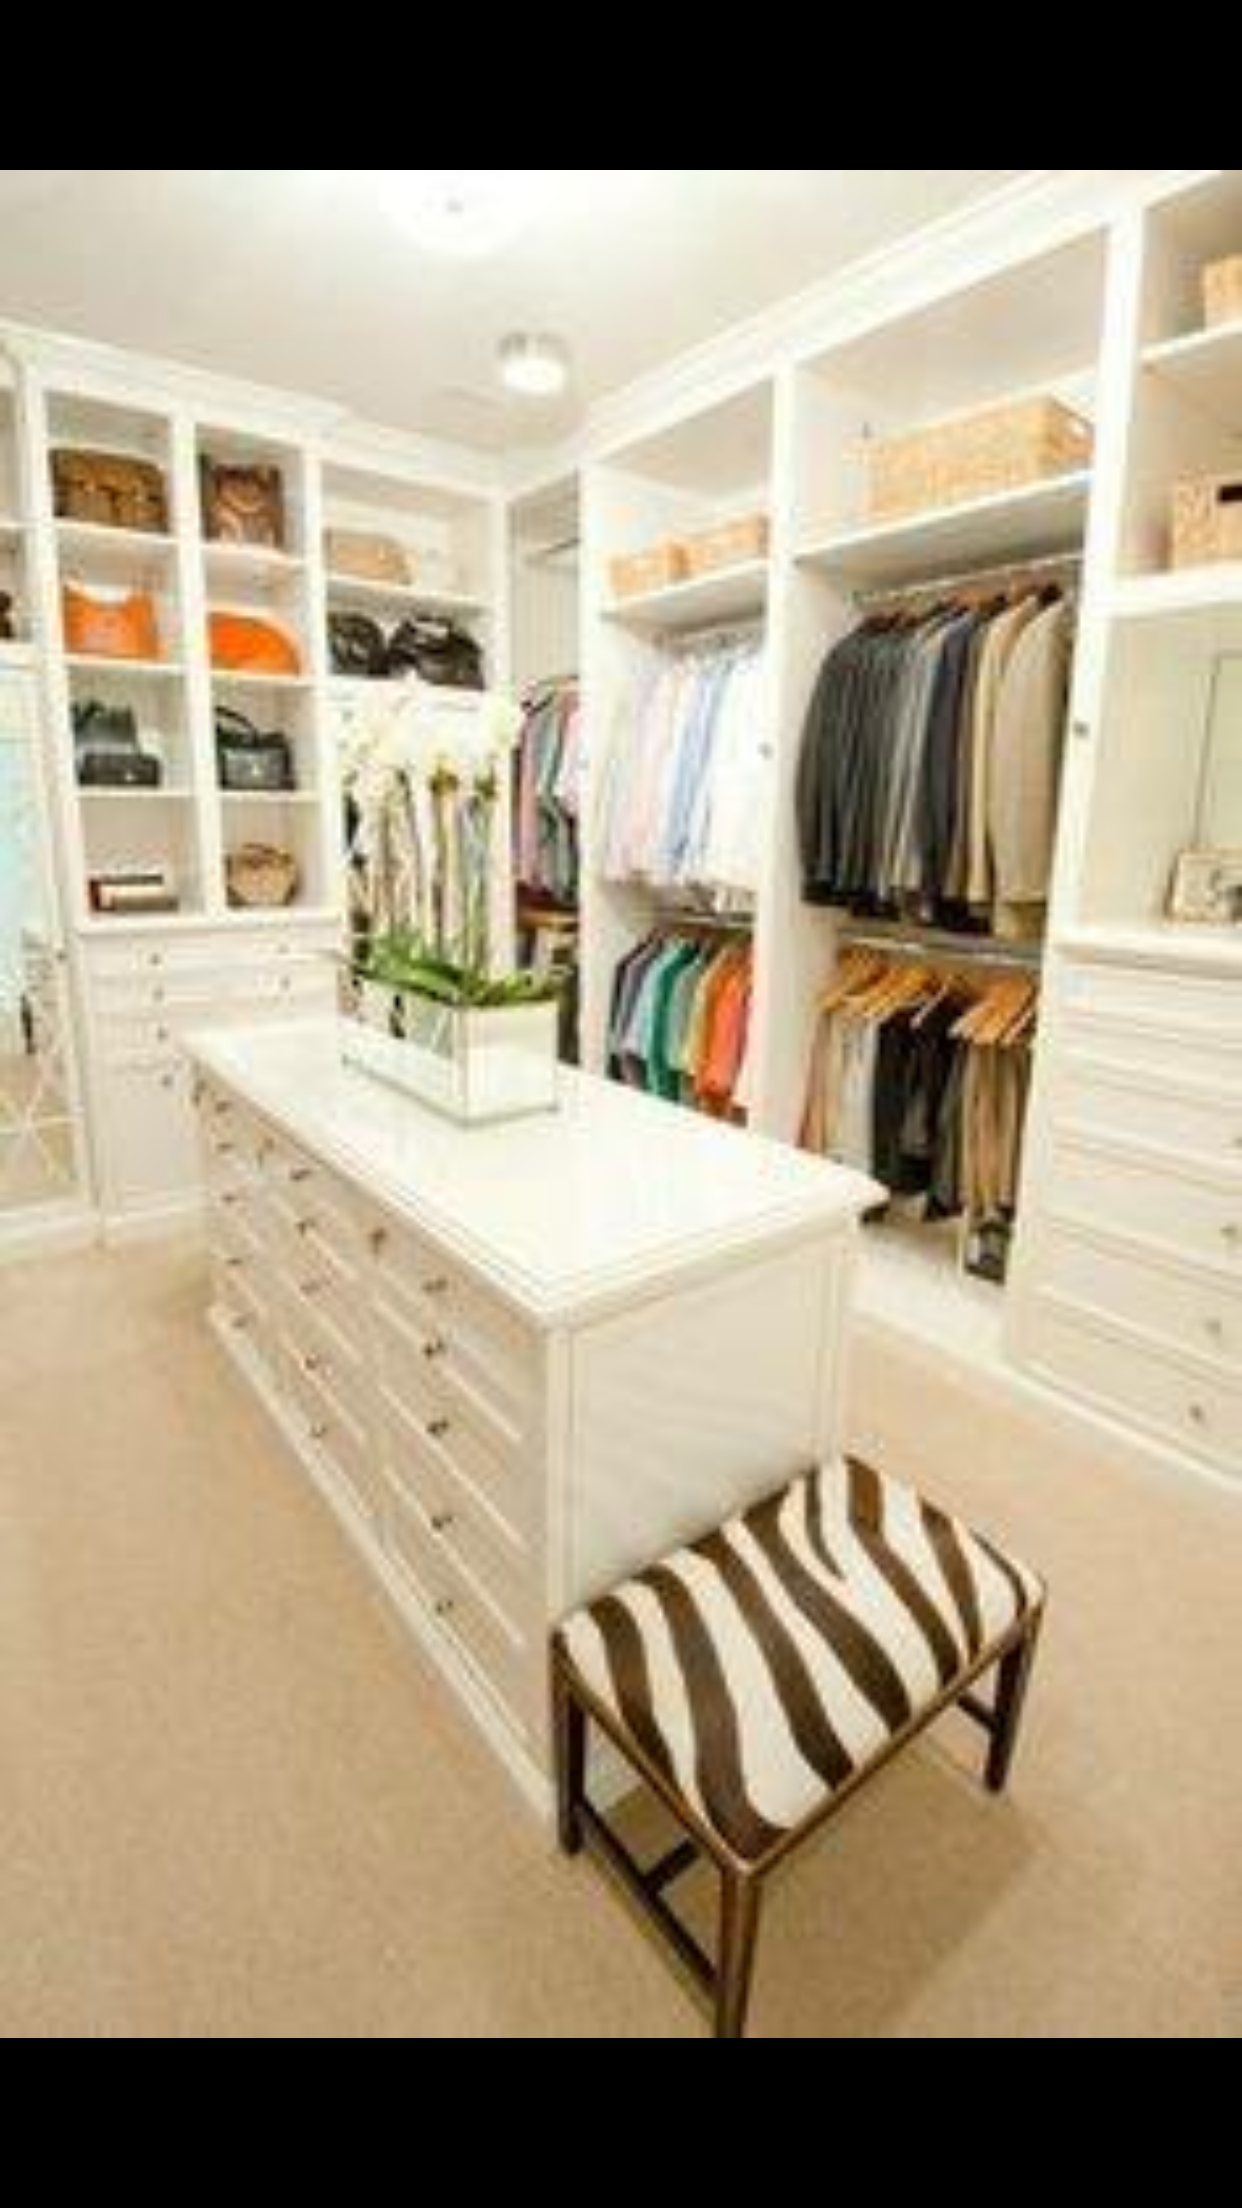 Beautiful master bedroom closets - Beautiful Master Bedrooms Master Bedroom Closet Closet Designs Dream Closets Walk In Closet Closet Ideas Master Bedroom Decorating Ideas Search Malm